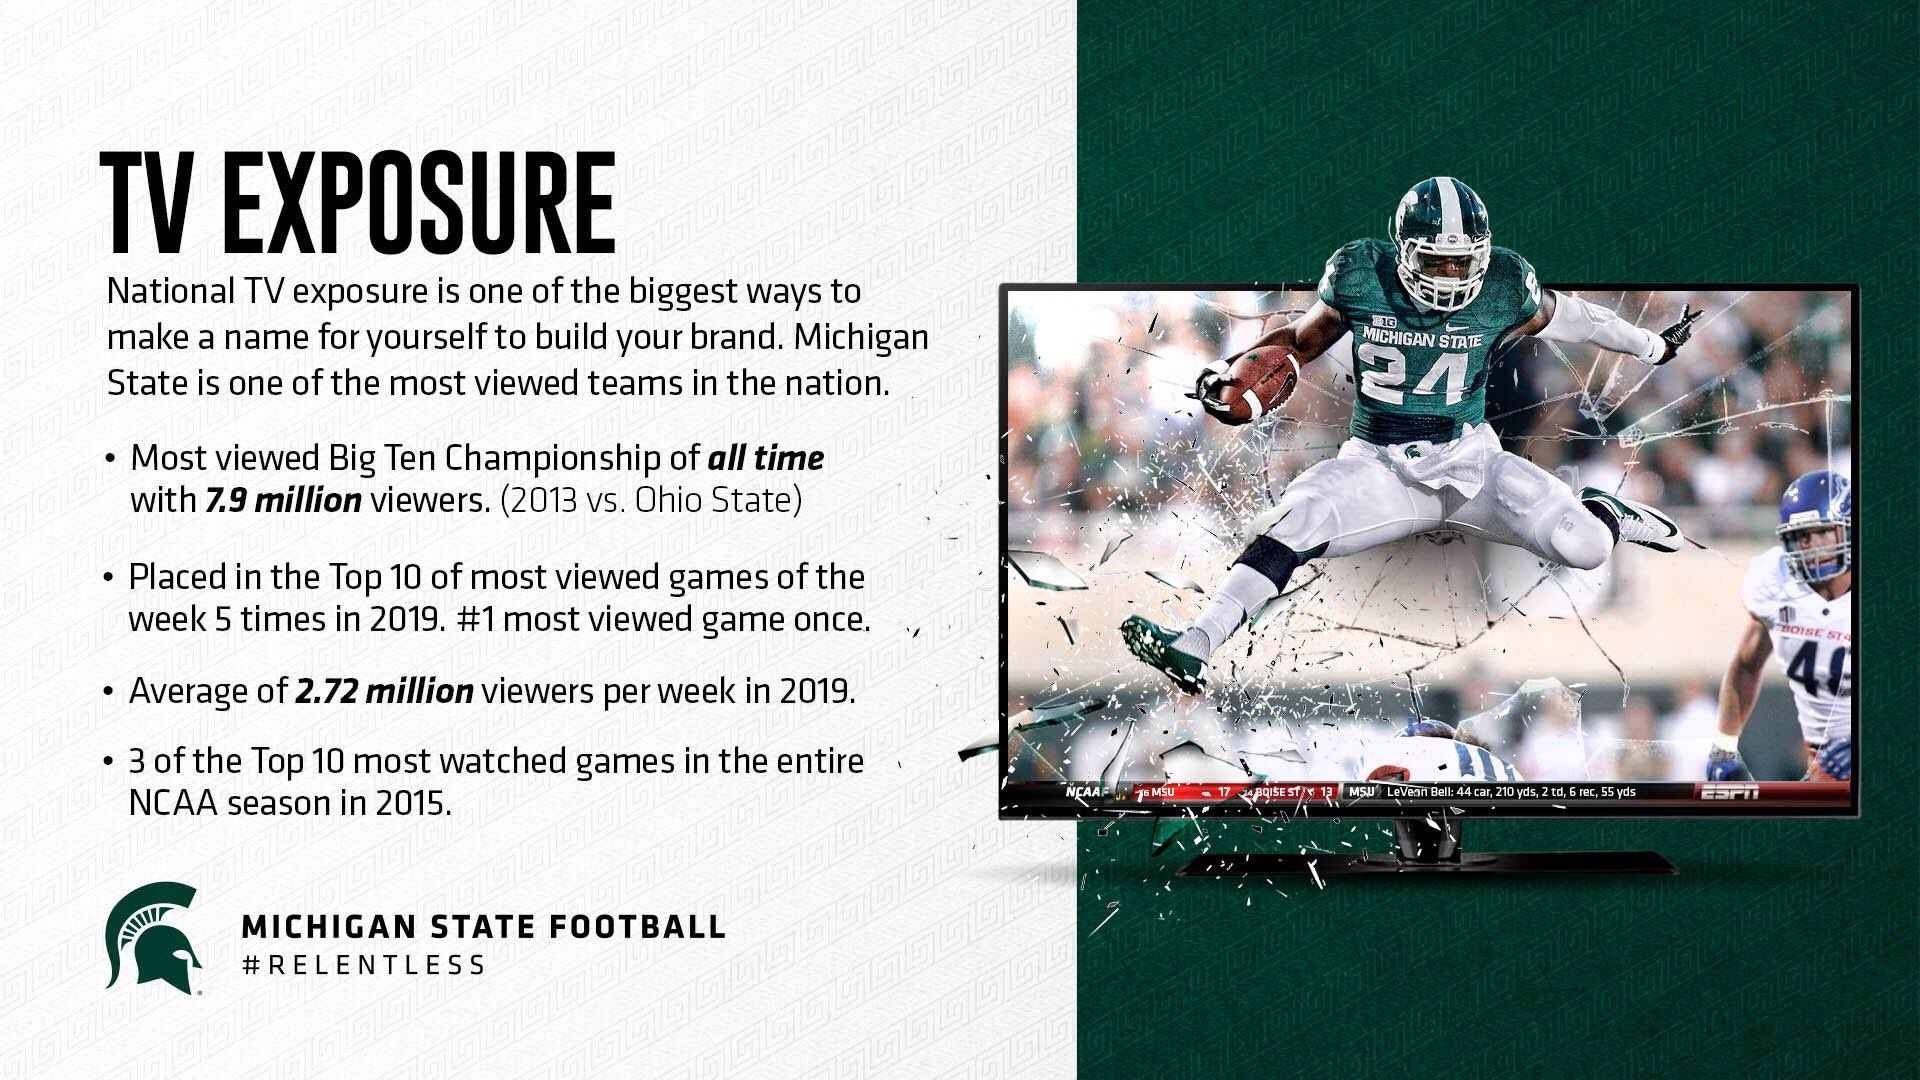 Michigan State In 2020 College Football Recruiting Sports Marketing Michigan State